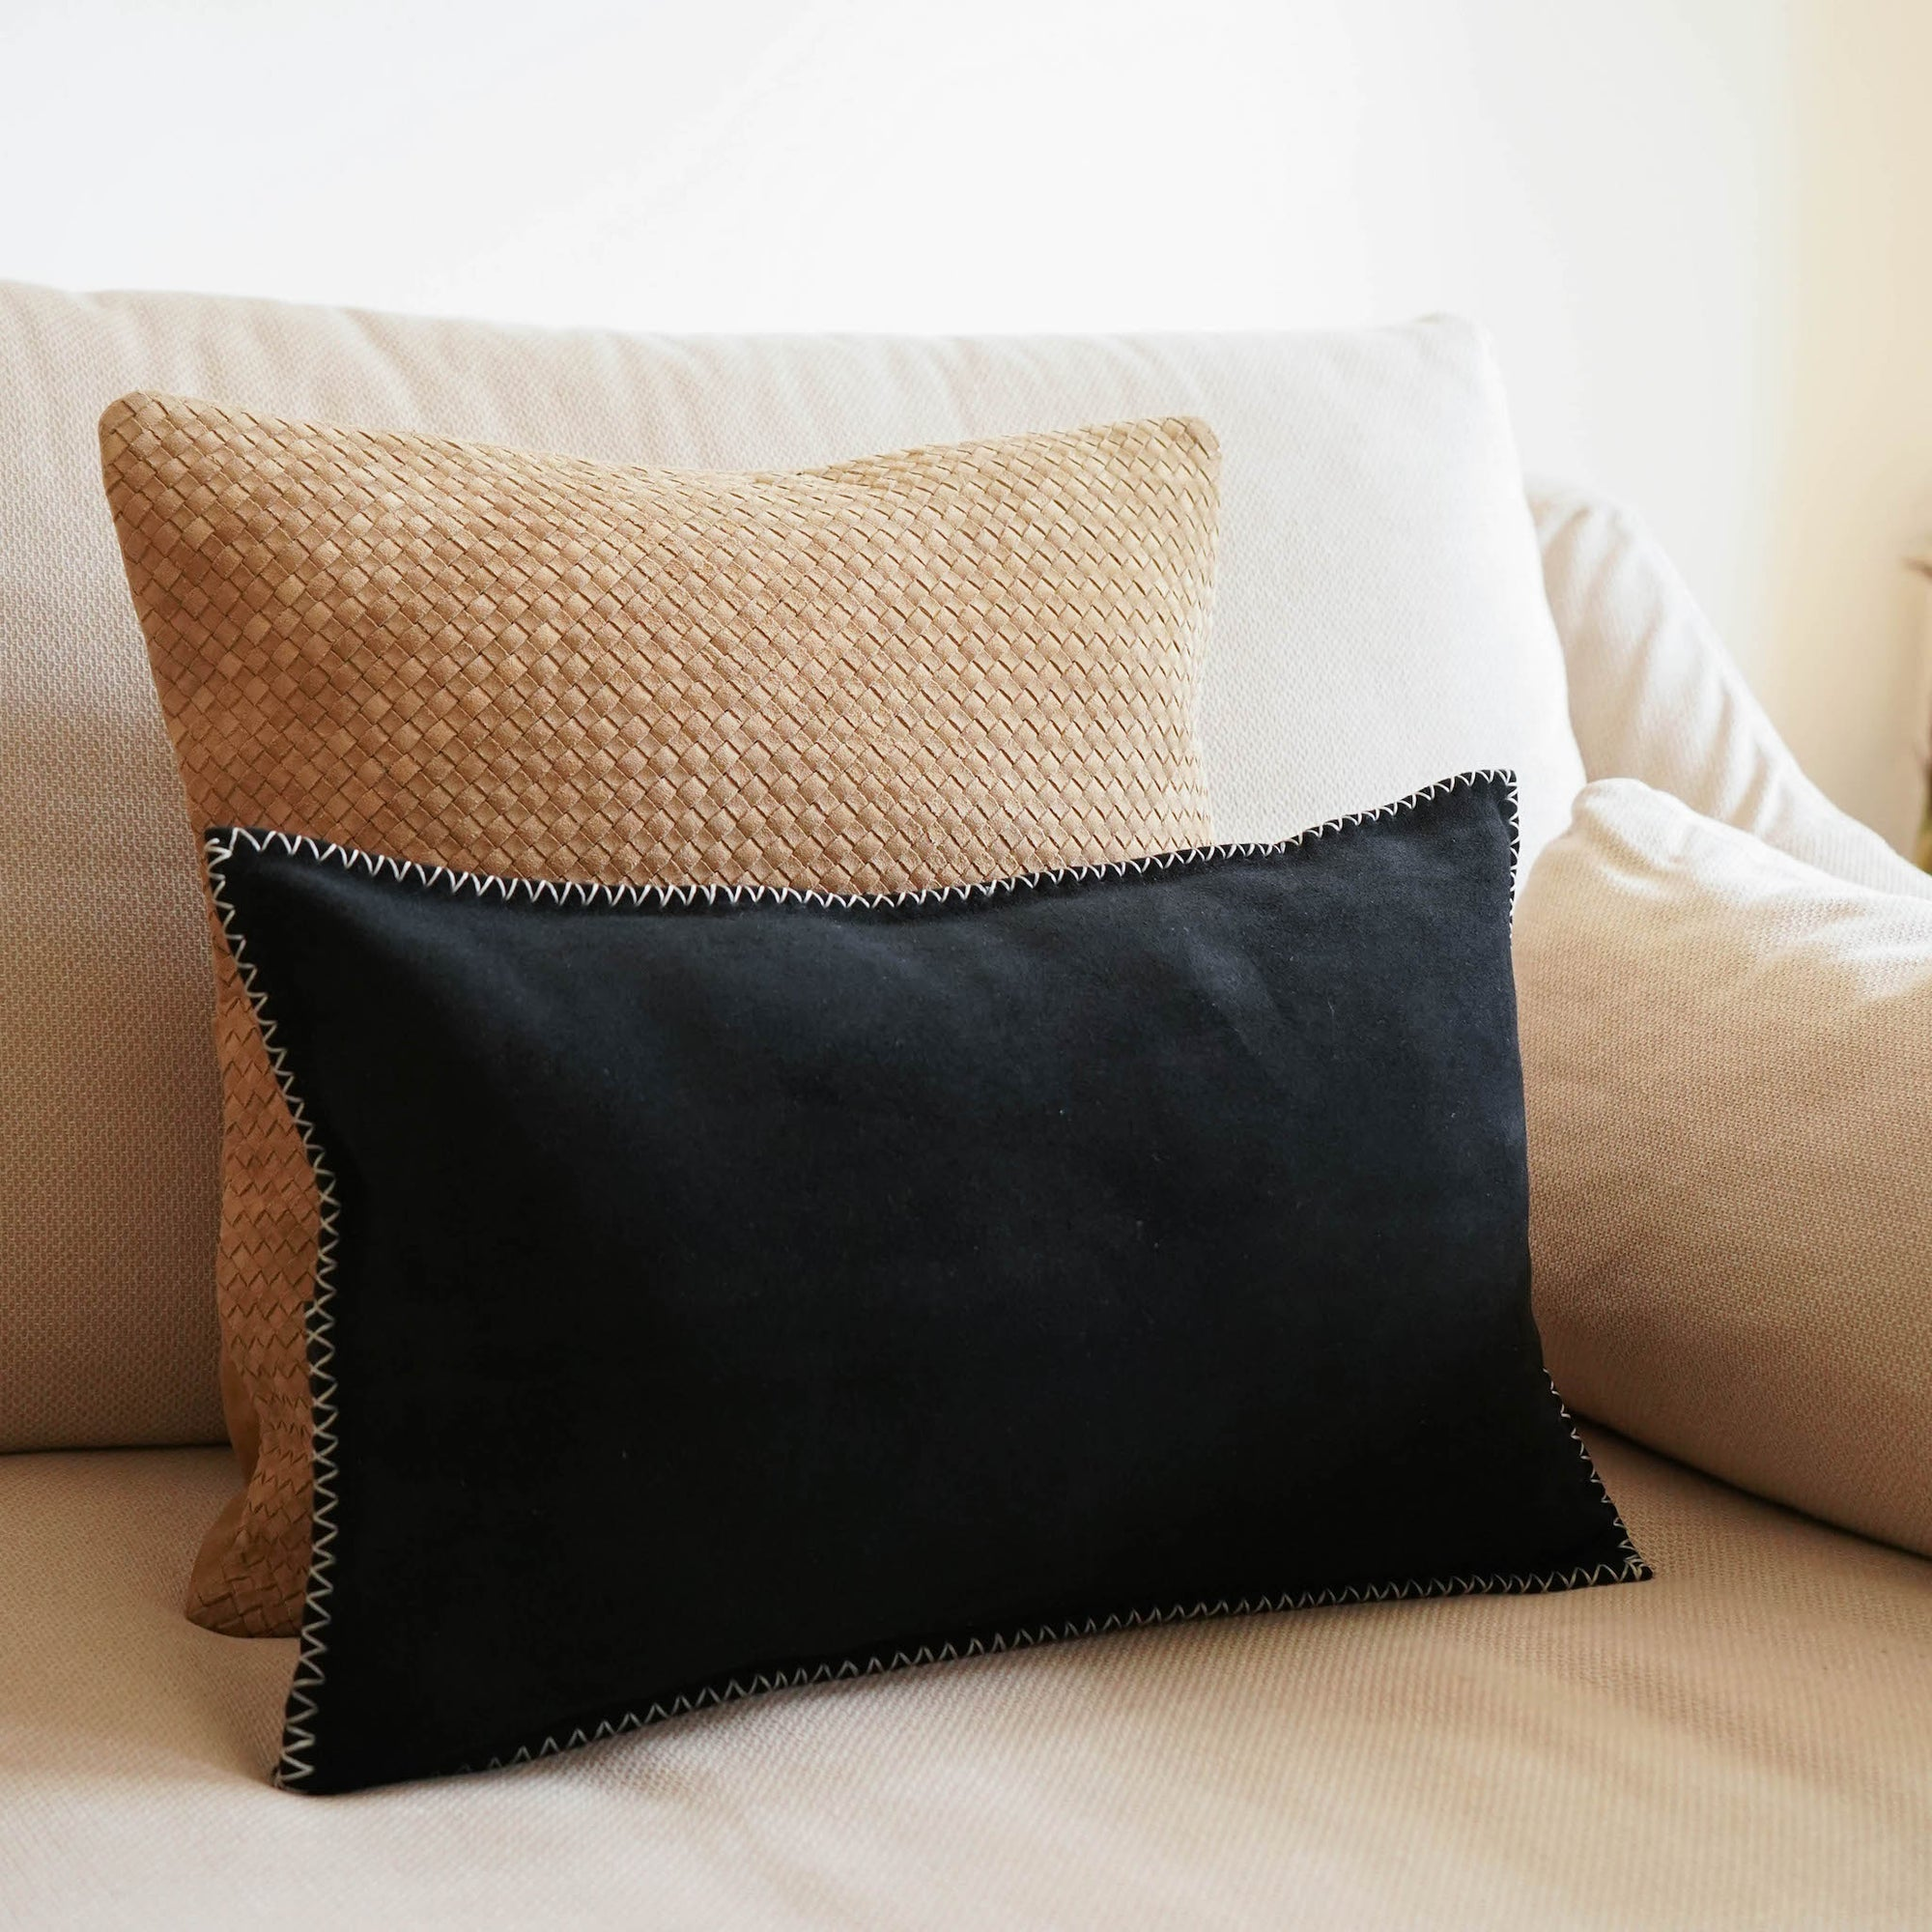 WILLIAMSBURG Suede Pillow Cover